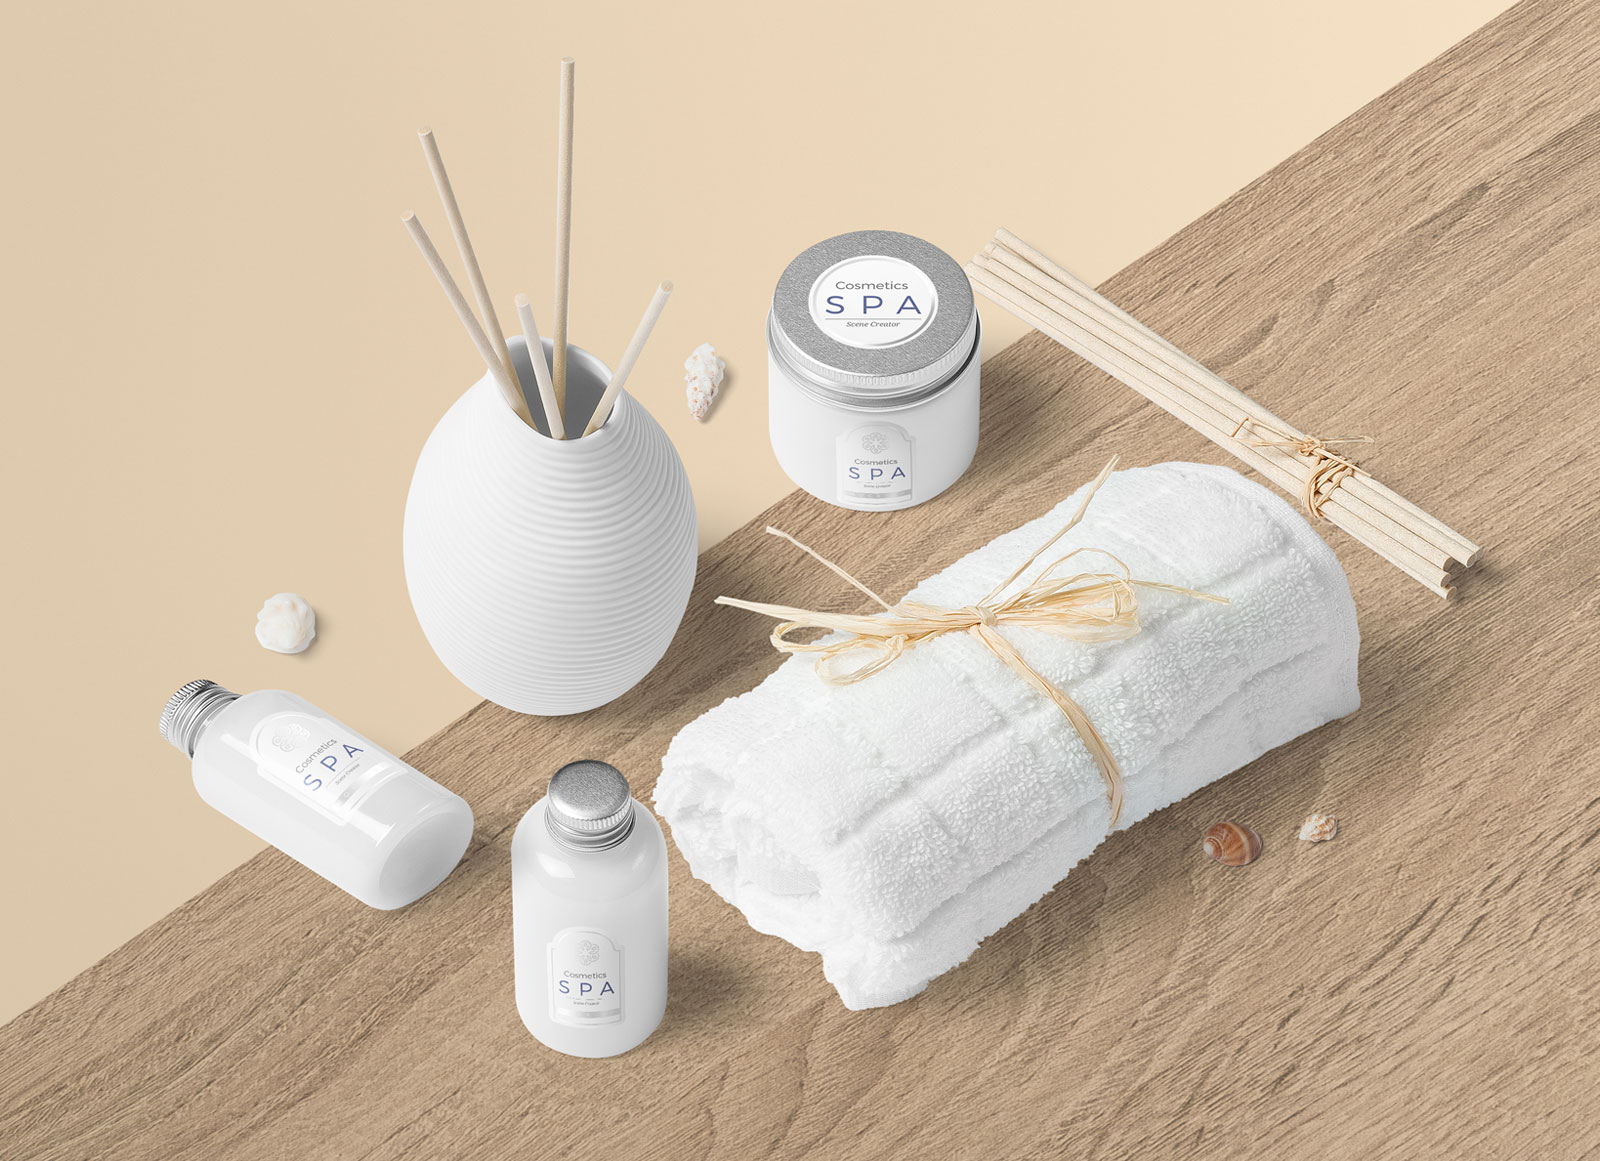 Free-Toiletries-Mockup-Scene-PSD-File